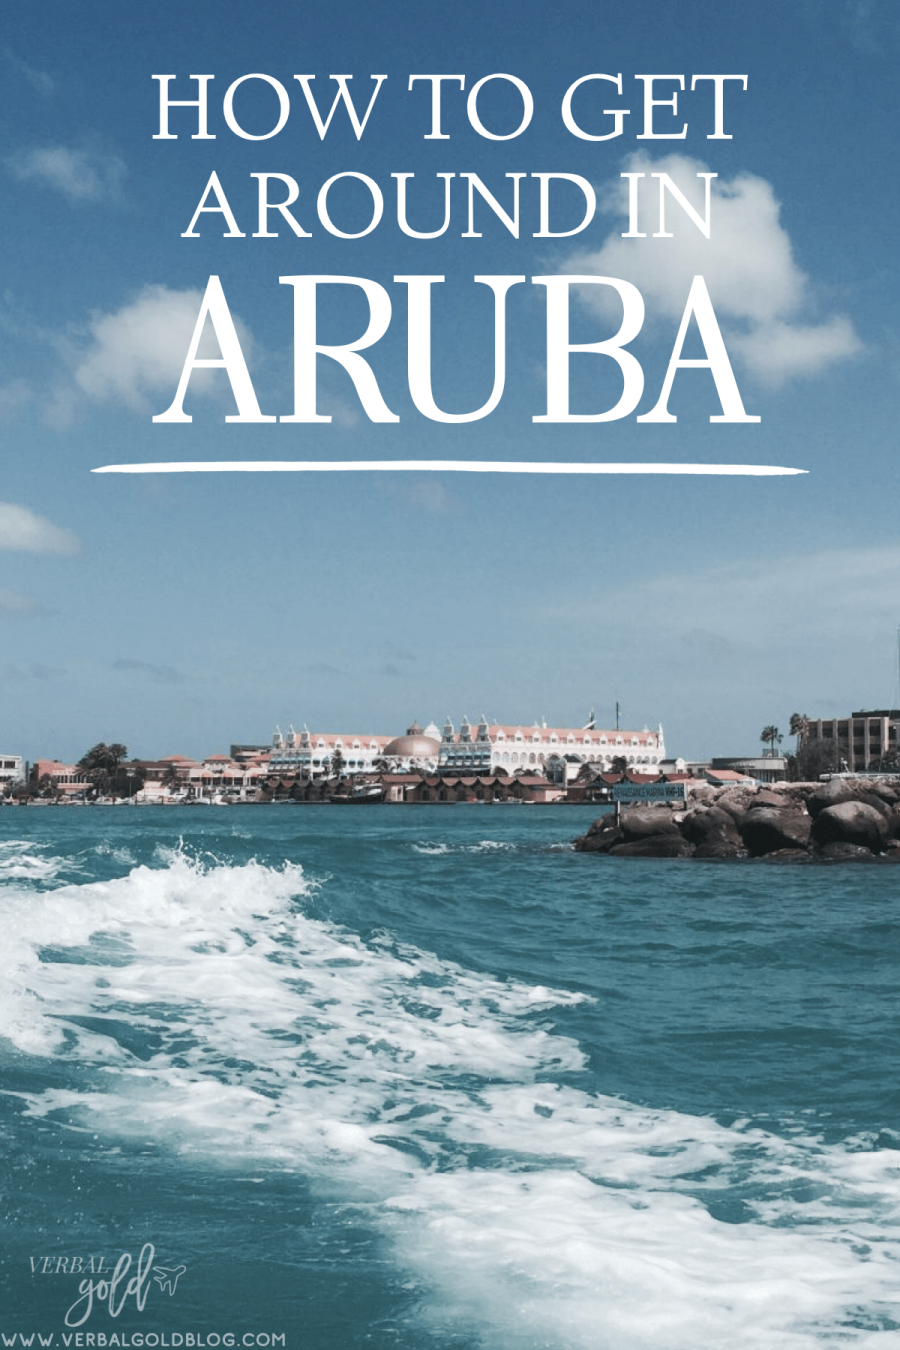 Wondering how to get around Aruba? Here's the ultimate guide to Aruba including transportation tips